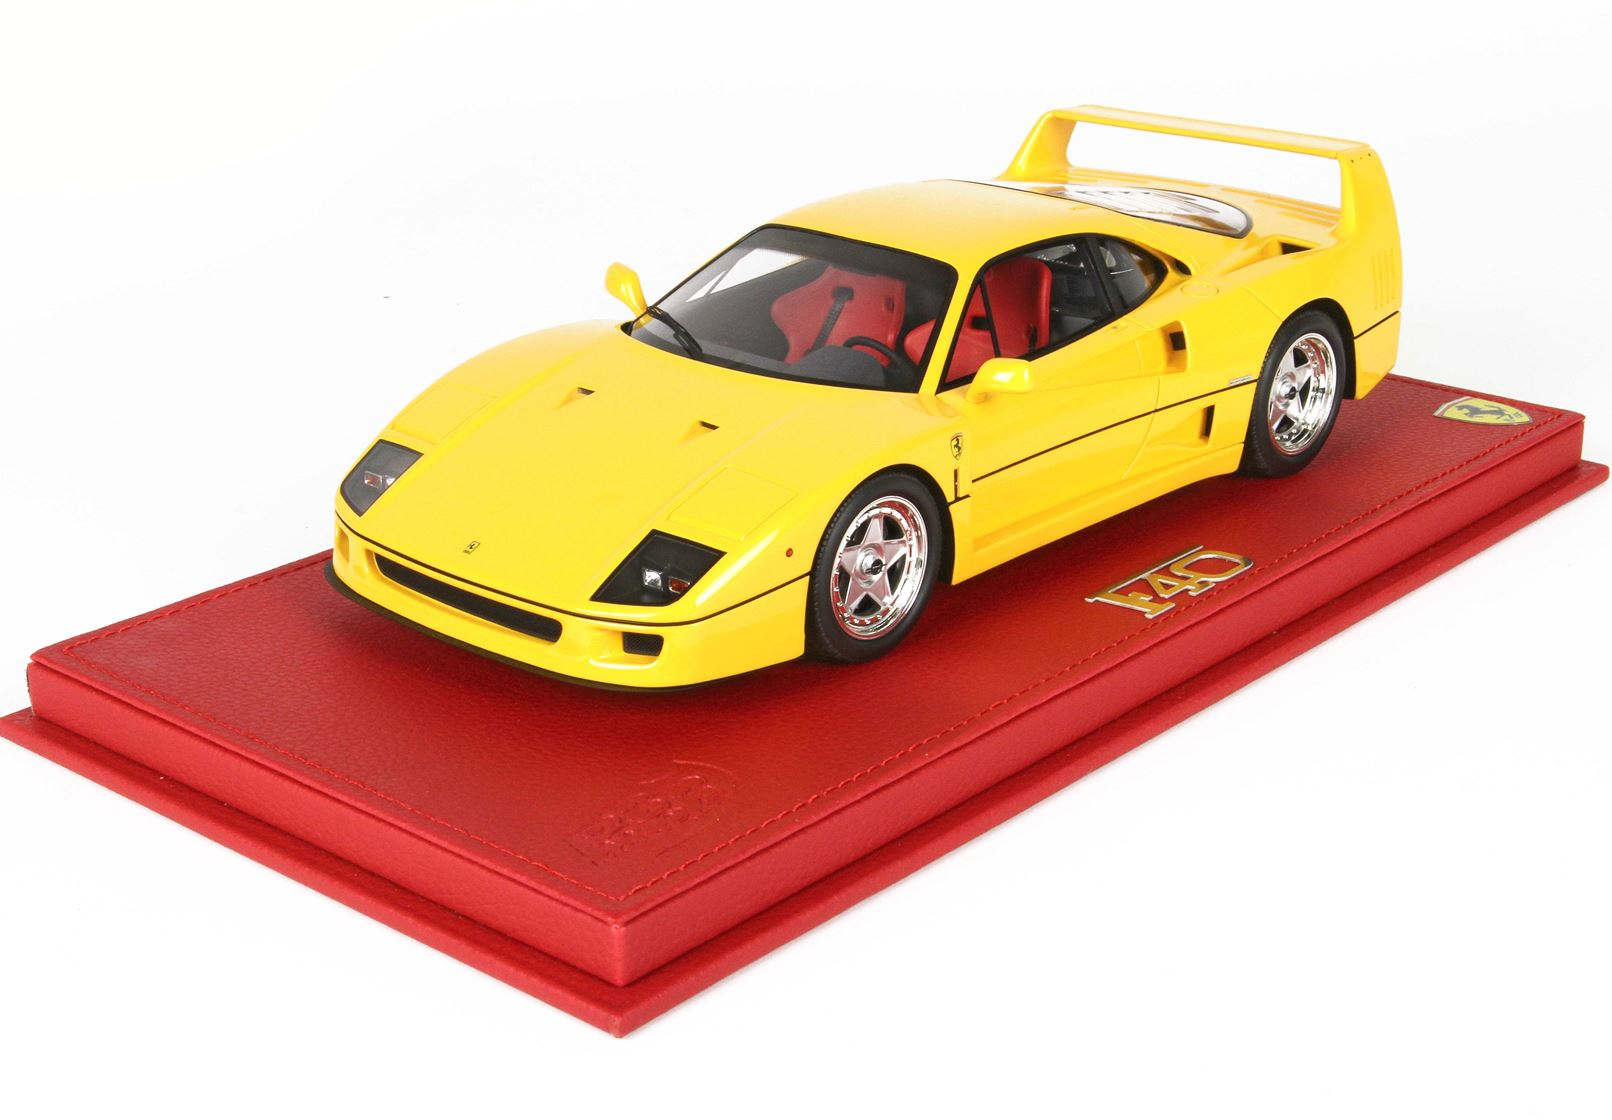 Ferrari F40 Giallo Modena 1987 With Case 1/18